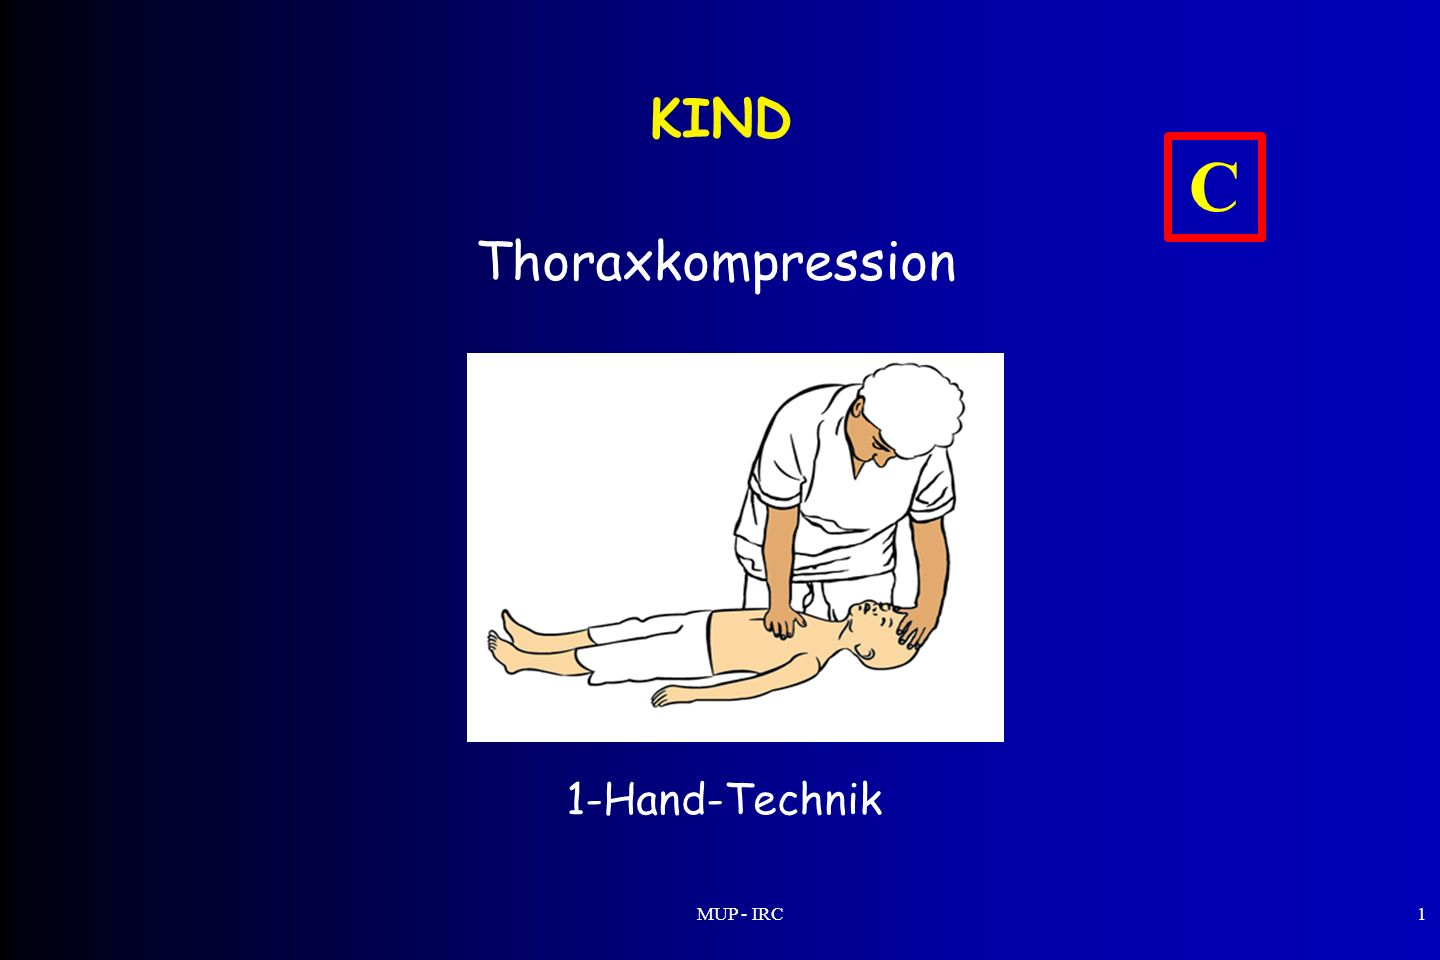 KIND C Thoraxkompression 1-Hand-Technik